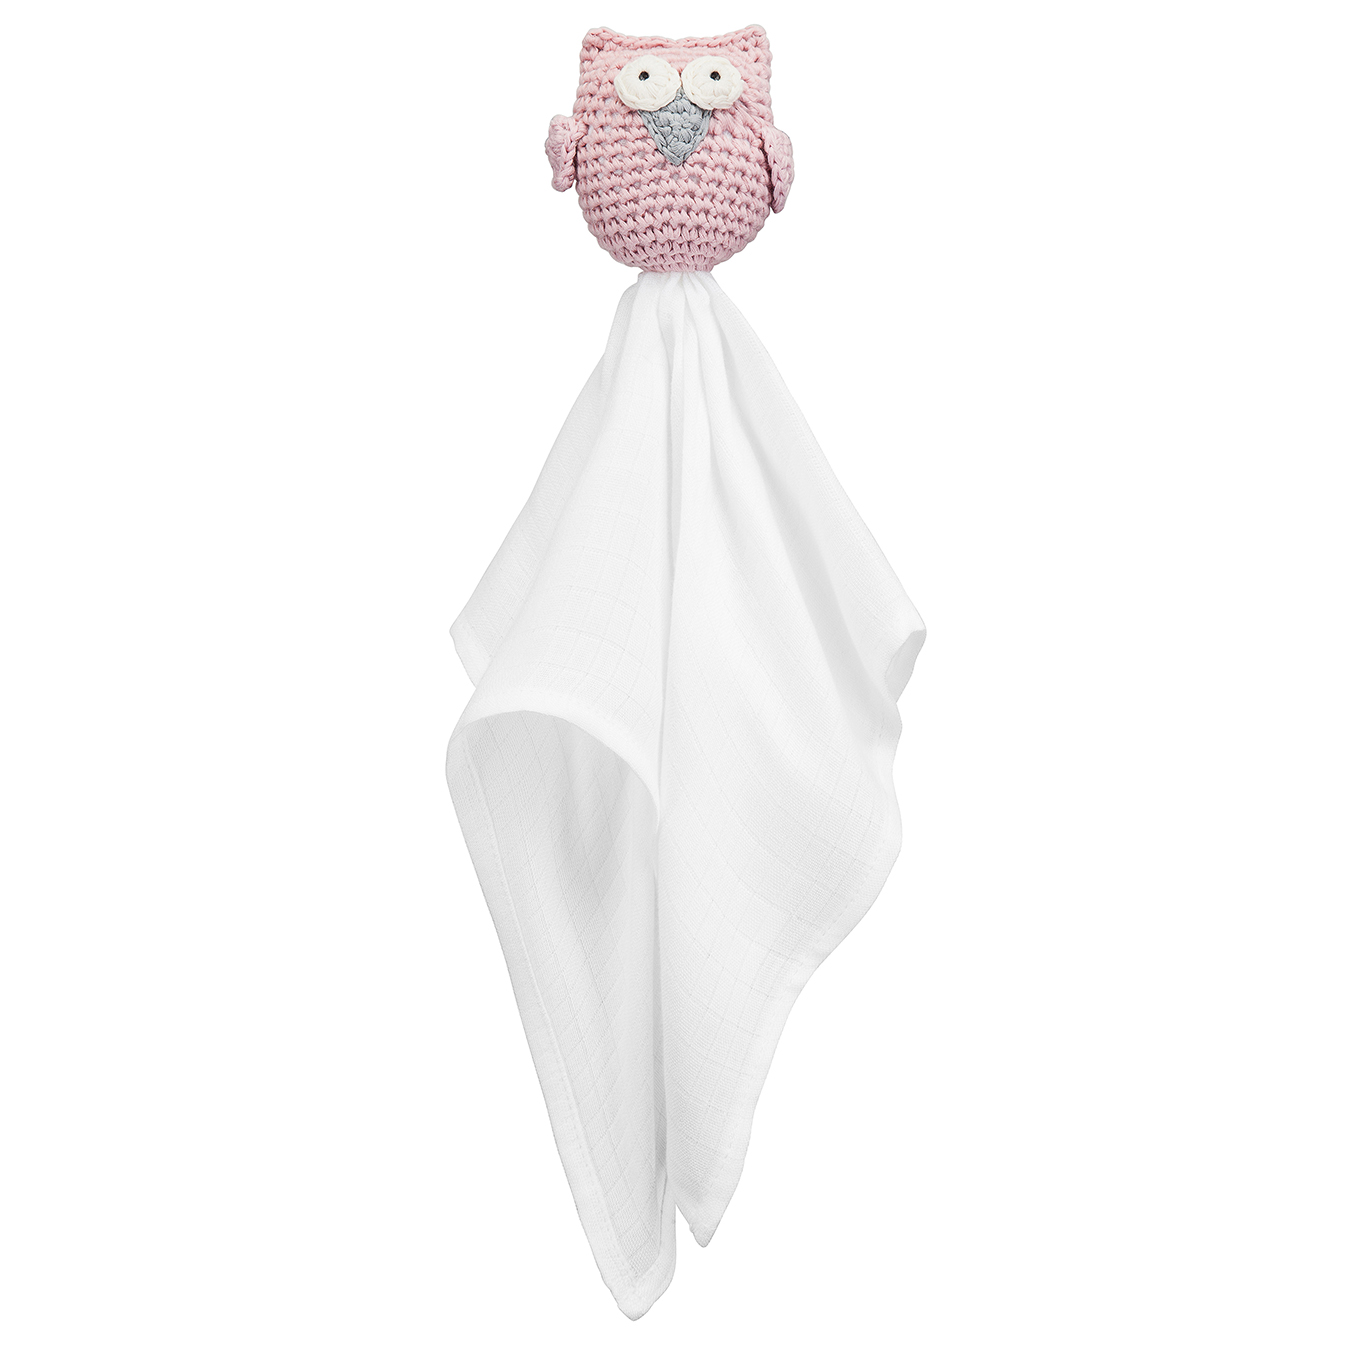 Snuggle owl security blanket Dusty pink